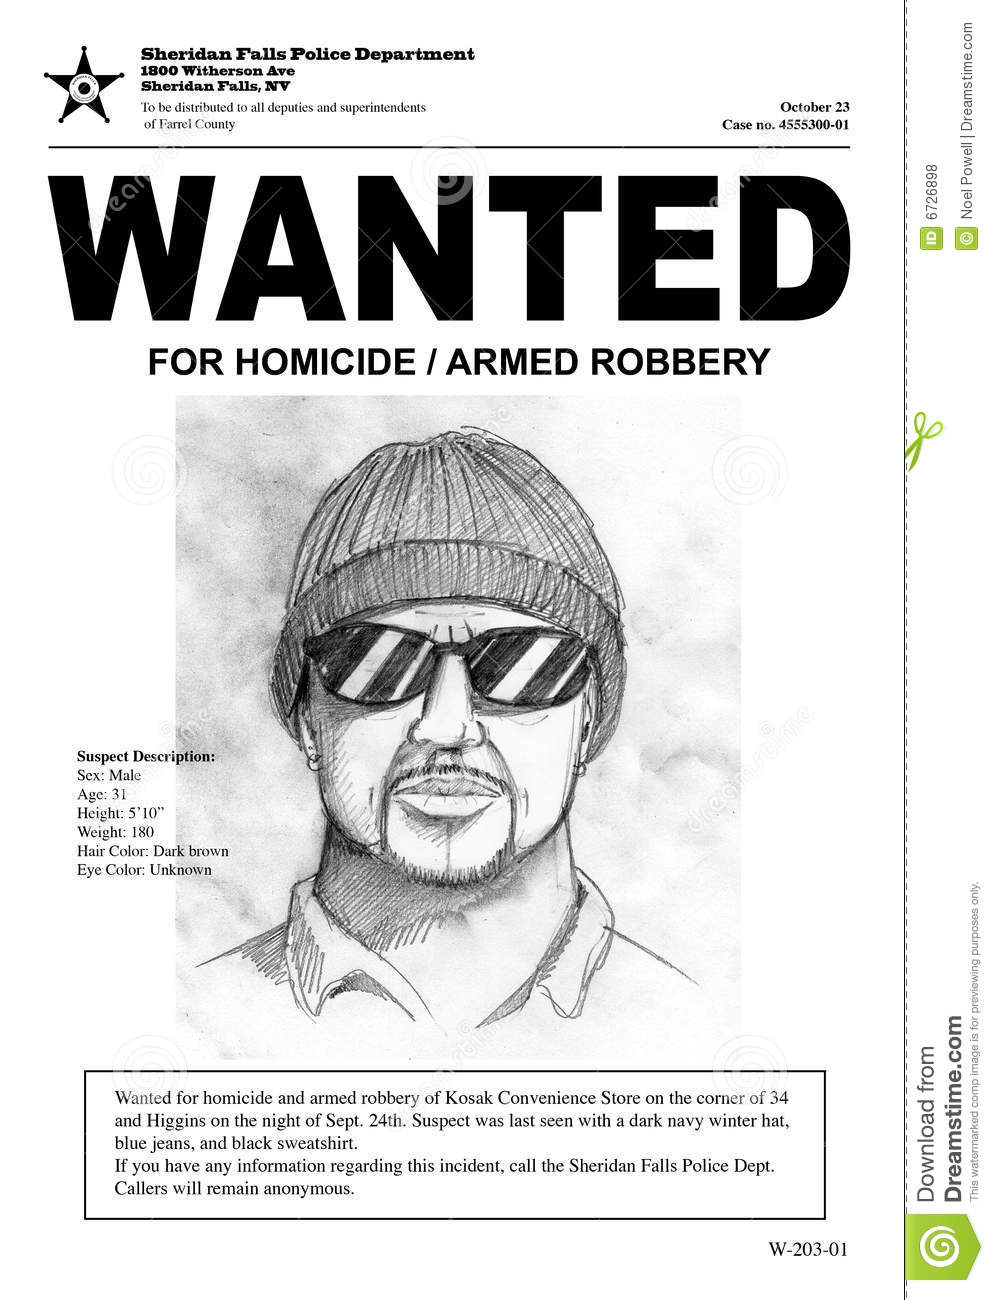 Doc416598 Sample Wanted Poster wantedlargejpg 72 Similar – Sample Wanted Poster